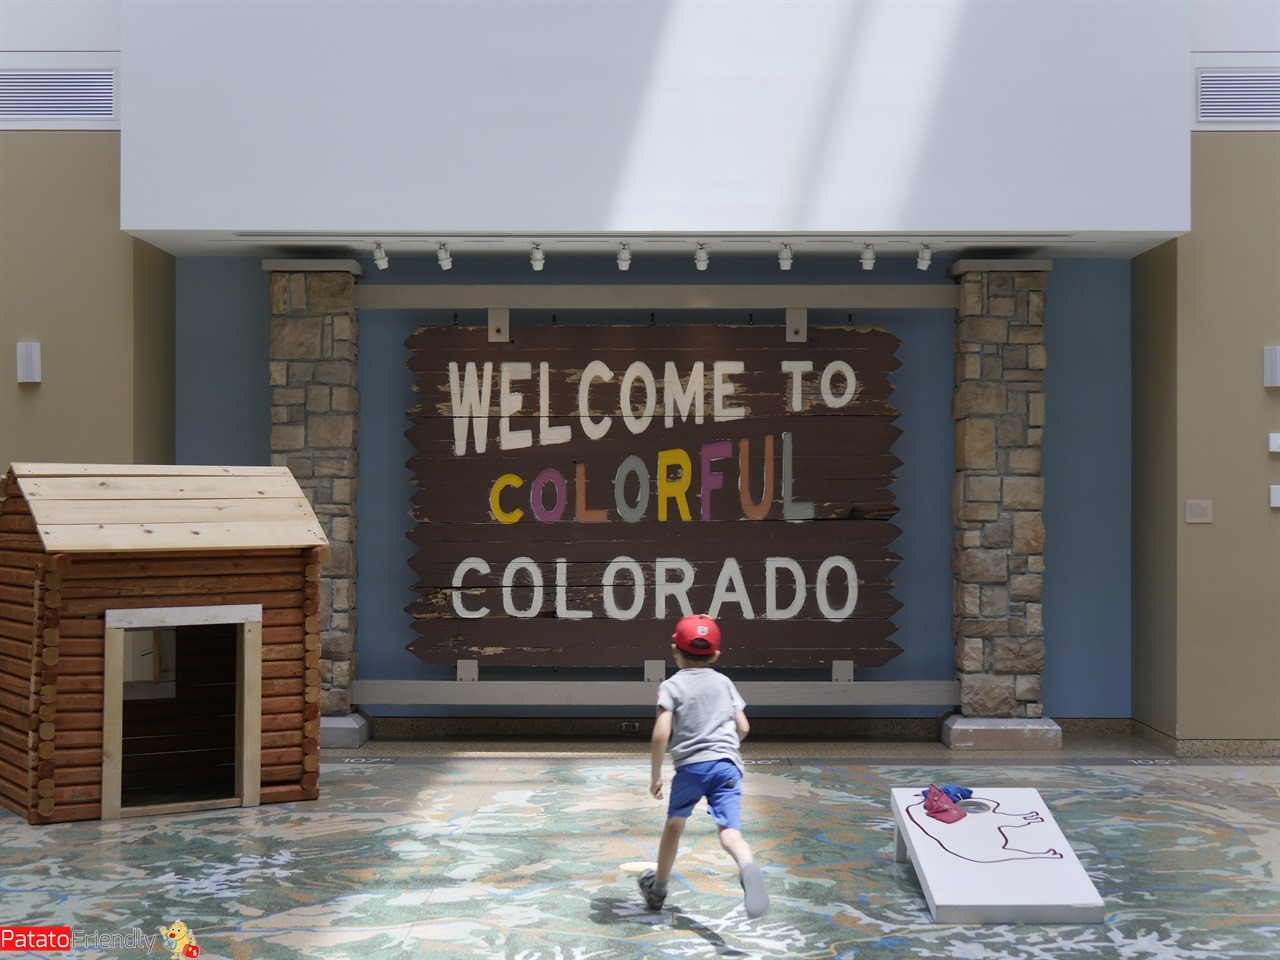 [cml_media_alt id='11517']Denver - Welcome to Colorful Colorado[/cml_media_alt]